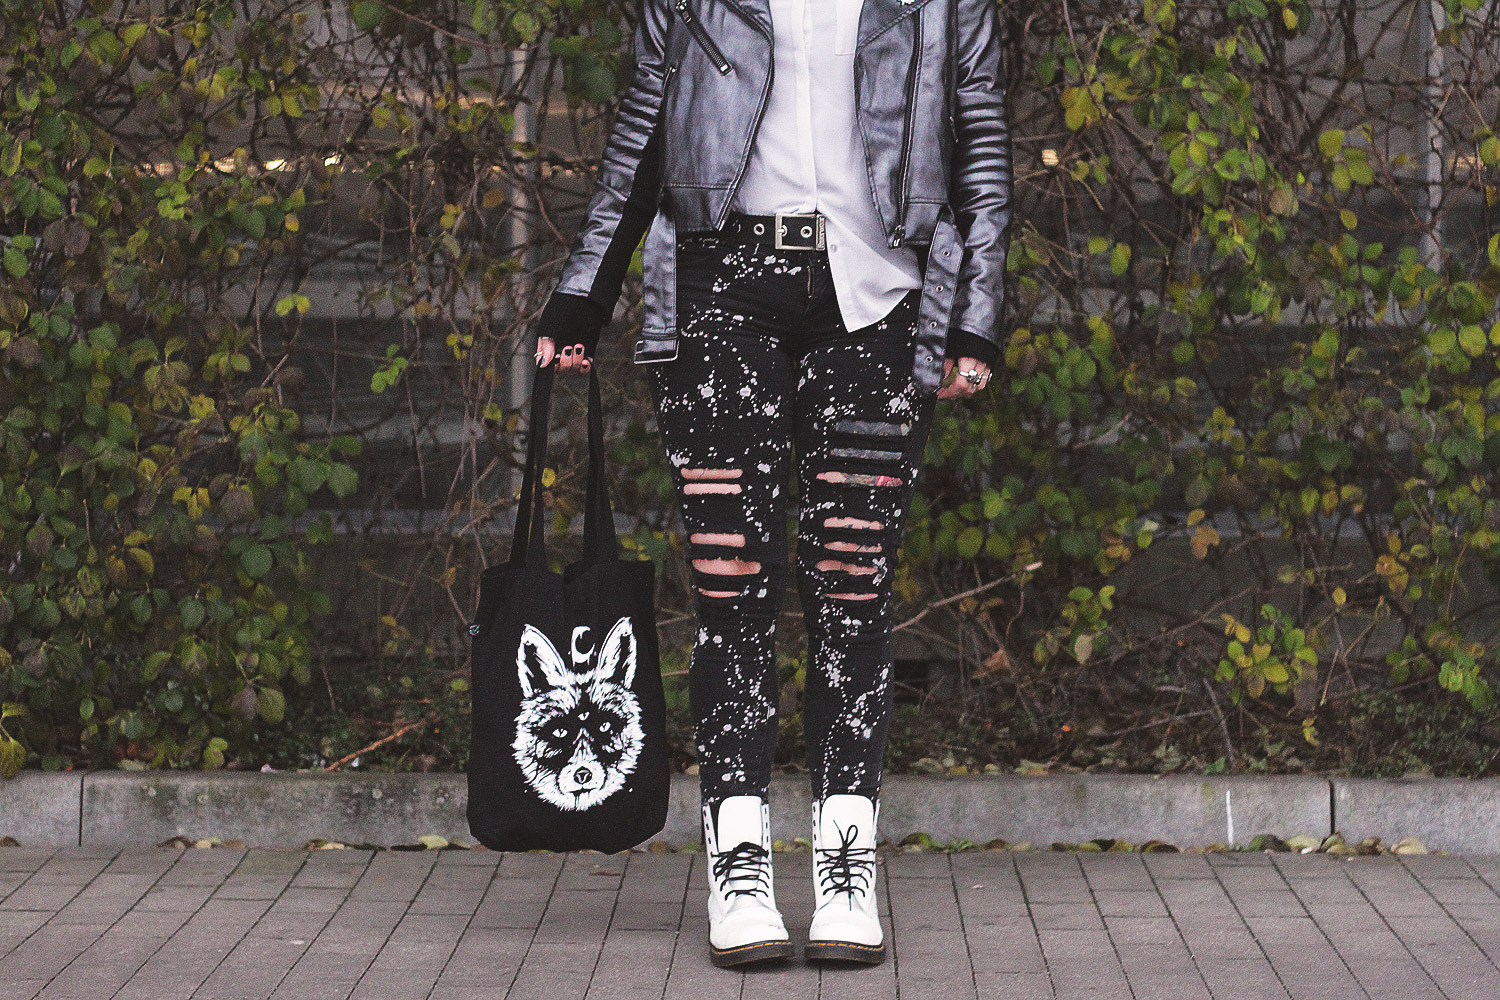 alternative, alternative fashion, alternative girl, alternative mode, altgirl, berlin, berlin fashion, berlin fashion blogger, berlin mode, berlin streetstyle, blogger, fashion blogger, girls with piercings, girls with tattoos, grunge, grunge fashion, grunge mode, mode, Punk, punk fashion, punk mode, punkgirl, punkmädchen, scenehair, snakebites, split hair, splithair, tattoomädchen, tattoo model, lederjacke, vulpix, alola, alola vulpix, bluse, silber, primary, h&M, spikes, kaizen, banned, strickjacke, cardigan, fuchs, nofitstate, docs, dr martens, weiße docs, white docs, pin, pin game, jutebeutel, beetle, zerrissen, schwarz, tripp nyc, tripp